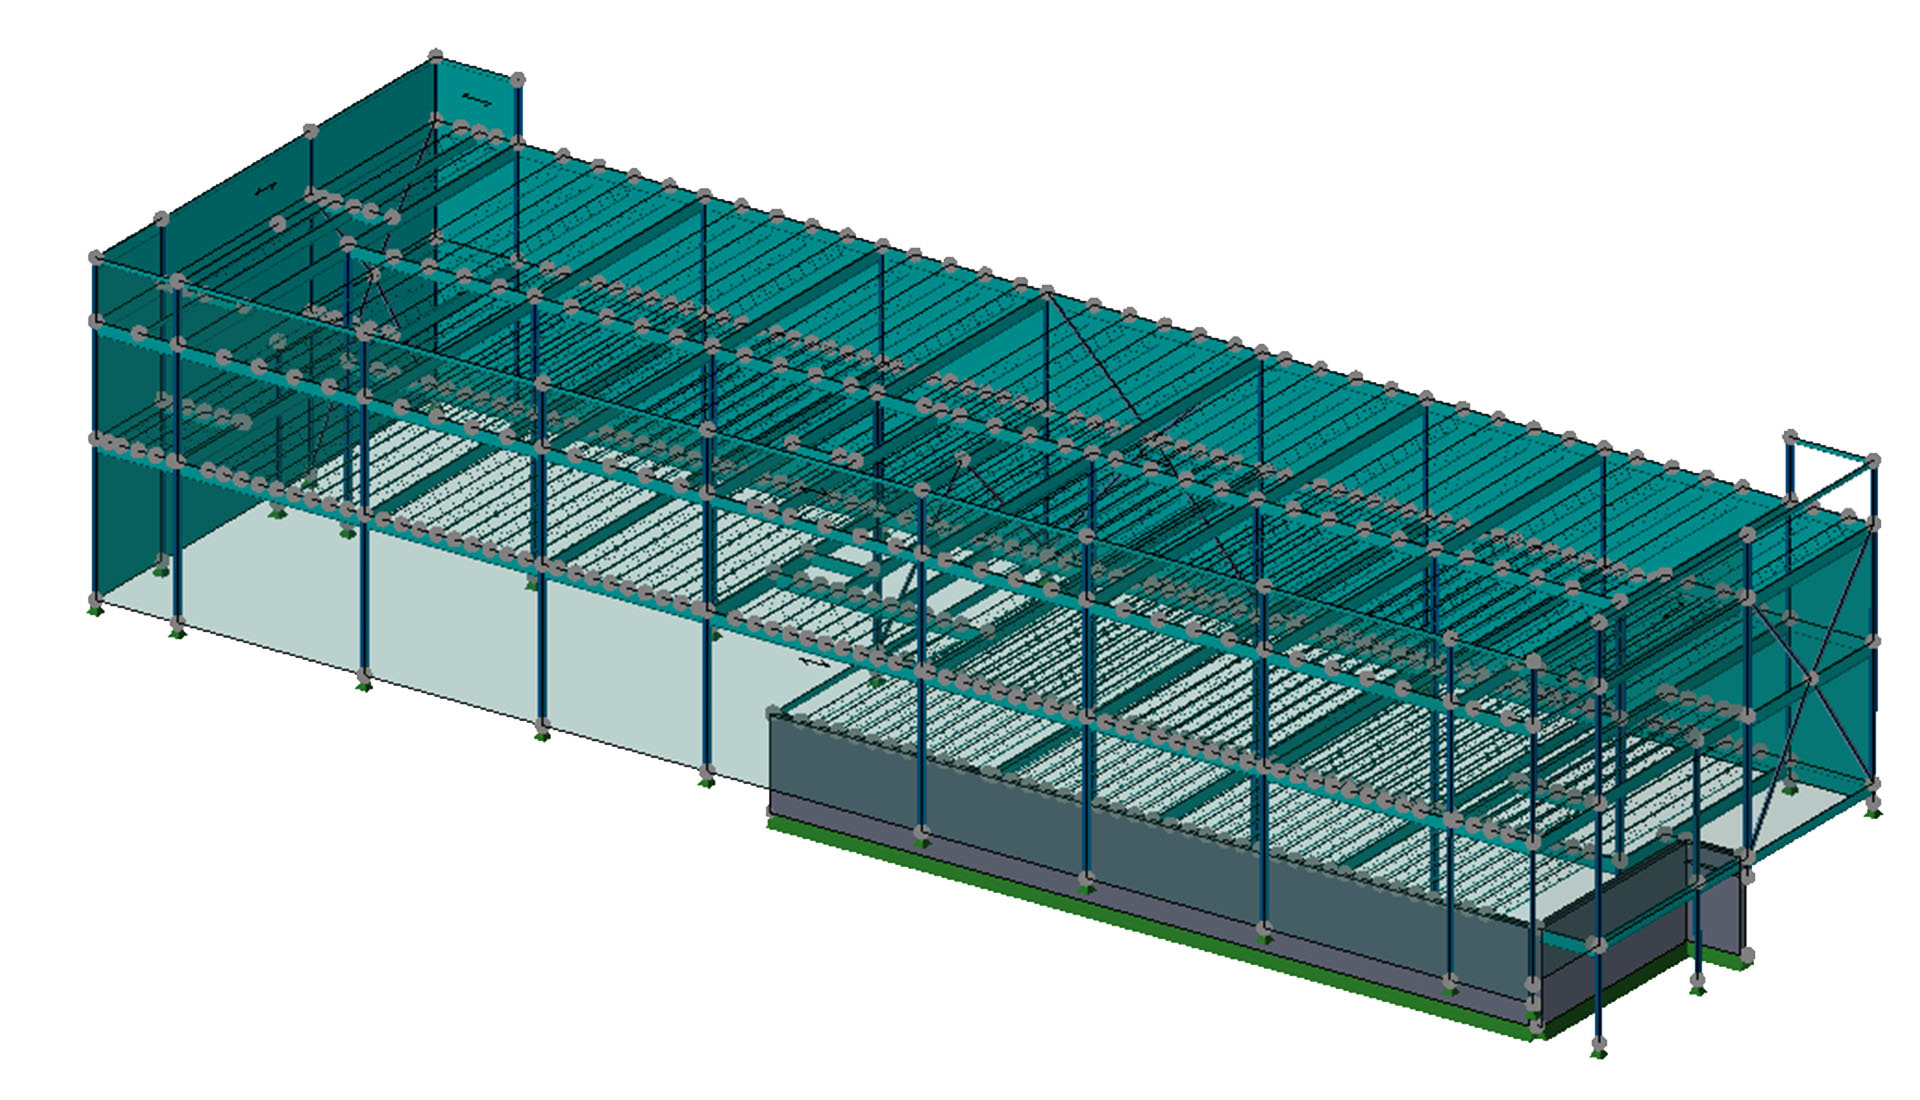 Image of BIM Structural modeling of Buckland- Commons